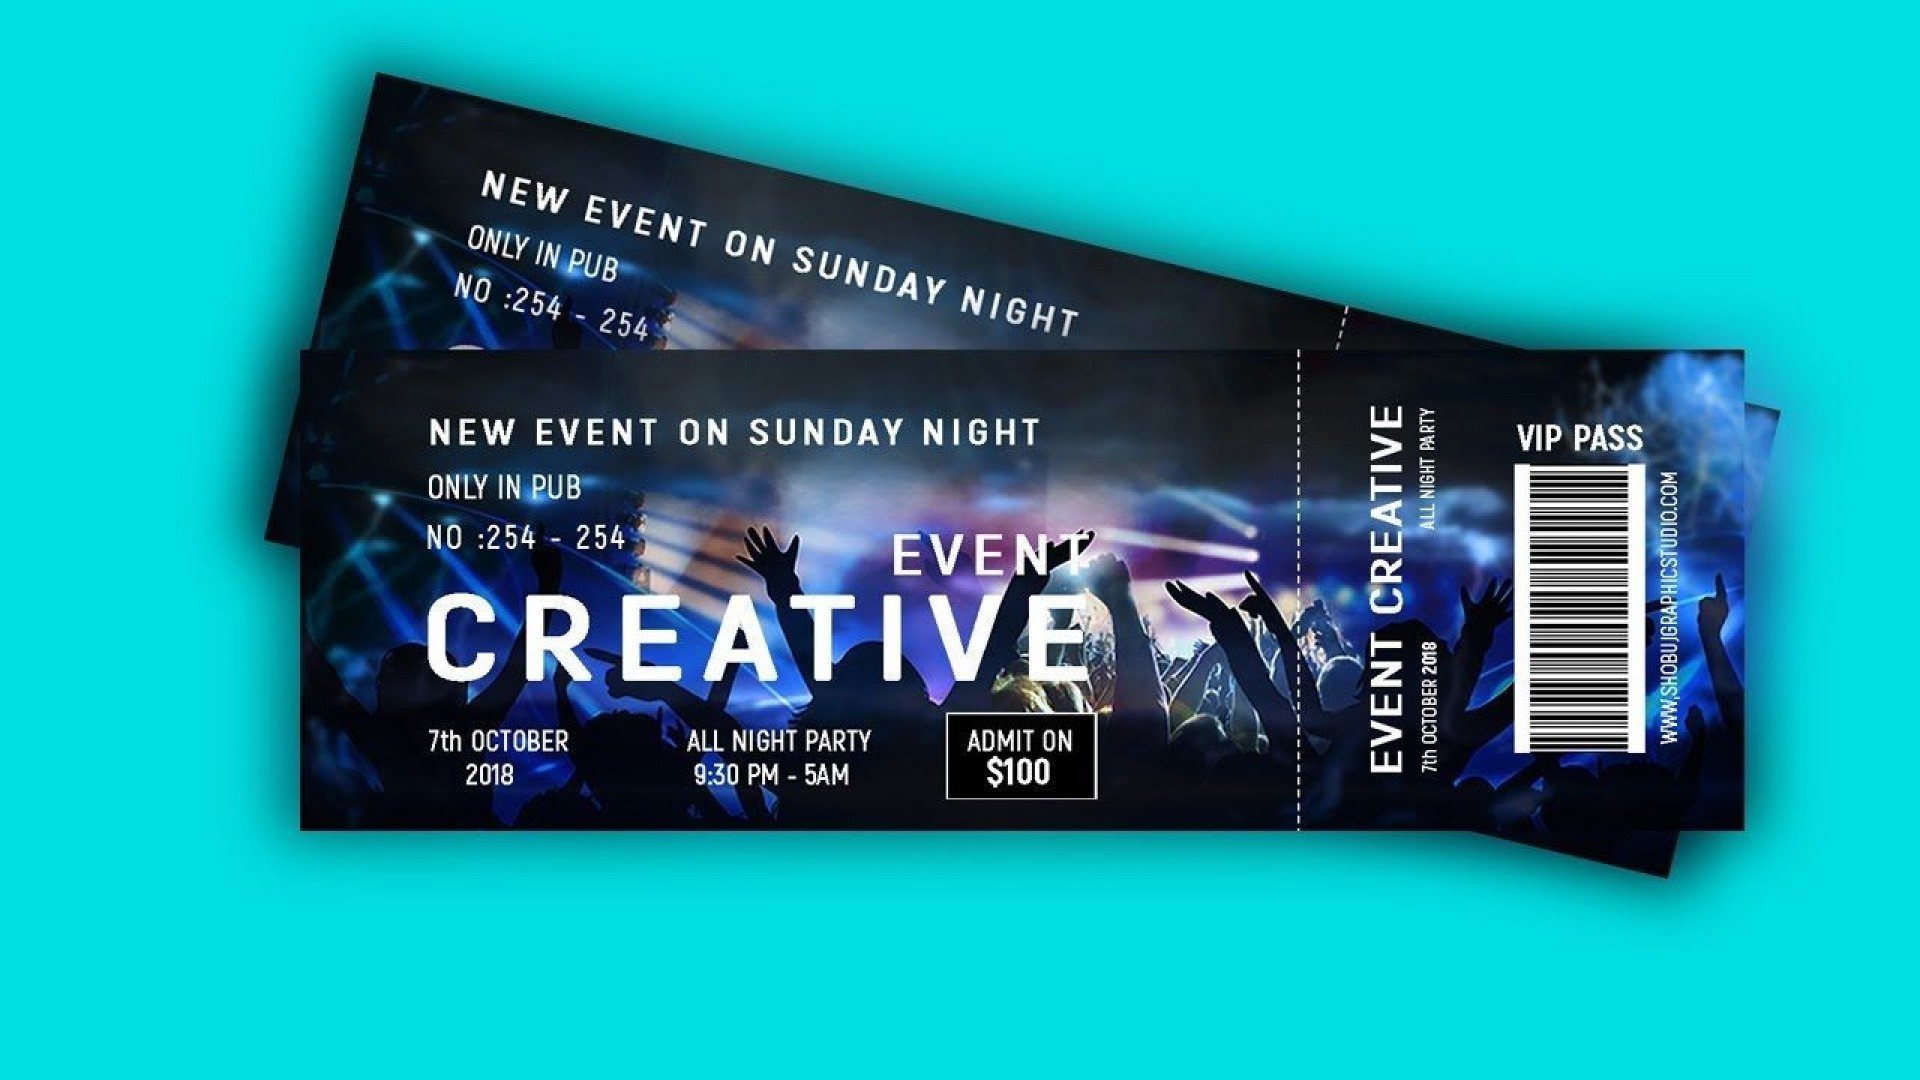 002 Unusual Event Ticket Template Photoshop High Def  Design Psd Free Download1920